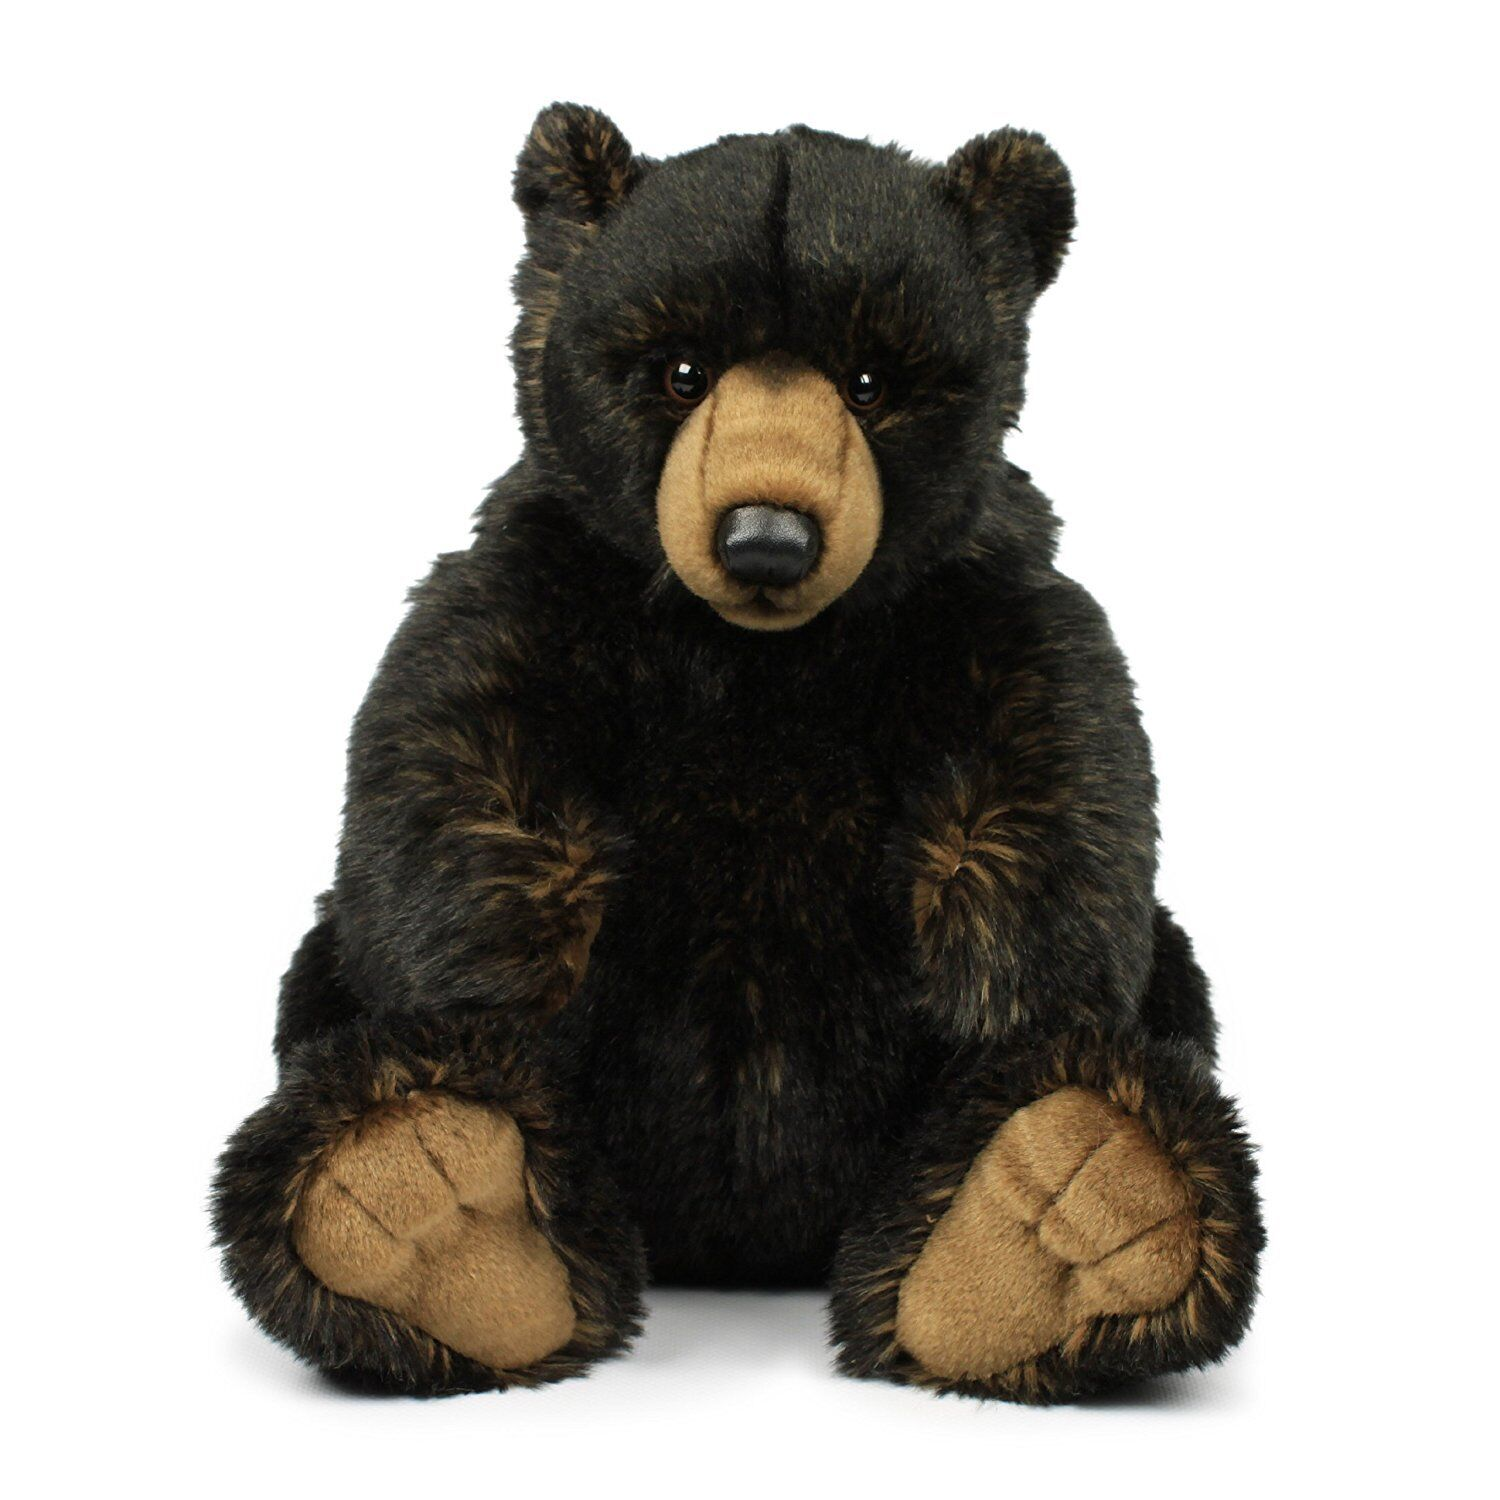 Peluche Orso Grizzly Seduto 32 Cm Peluches WWF PS 09747